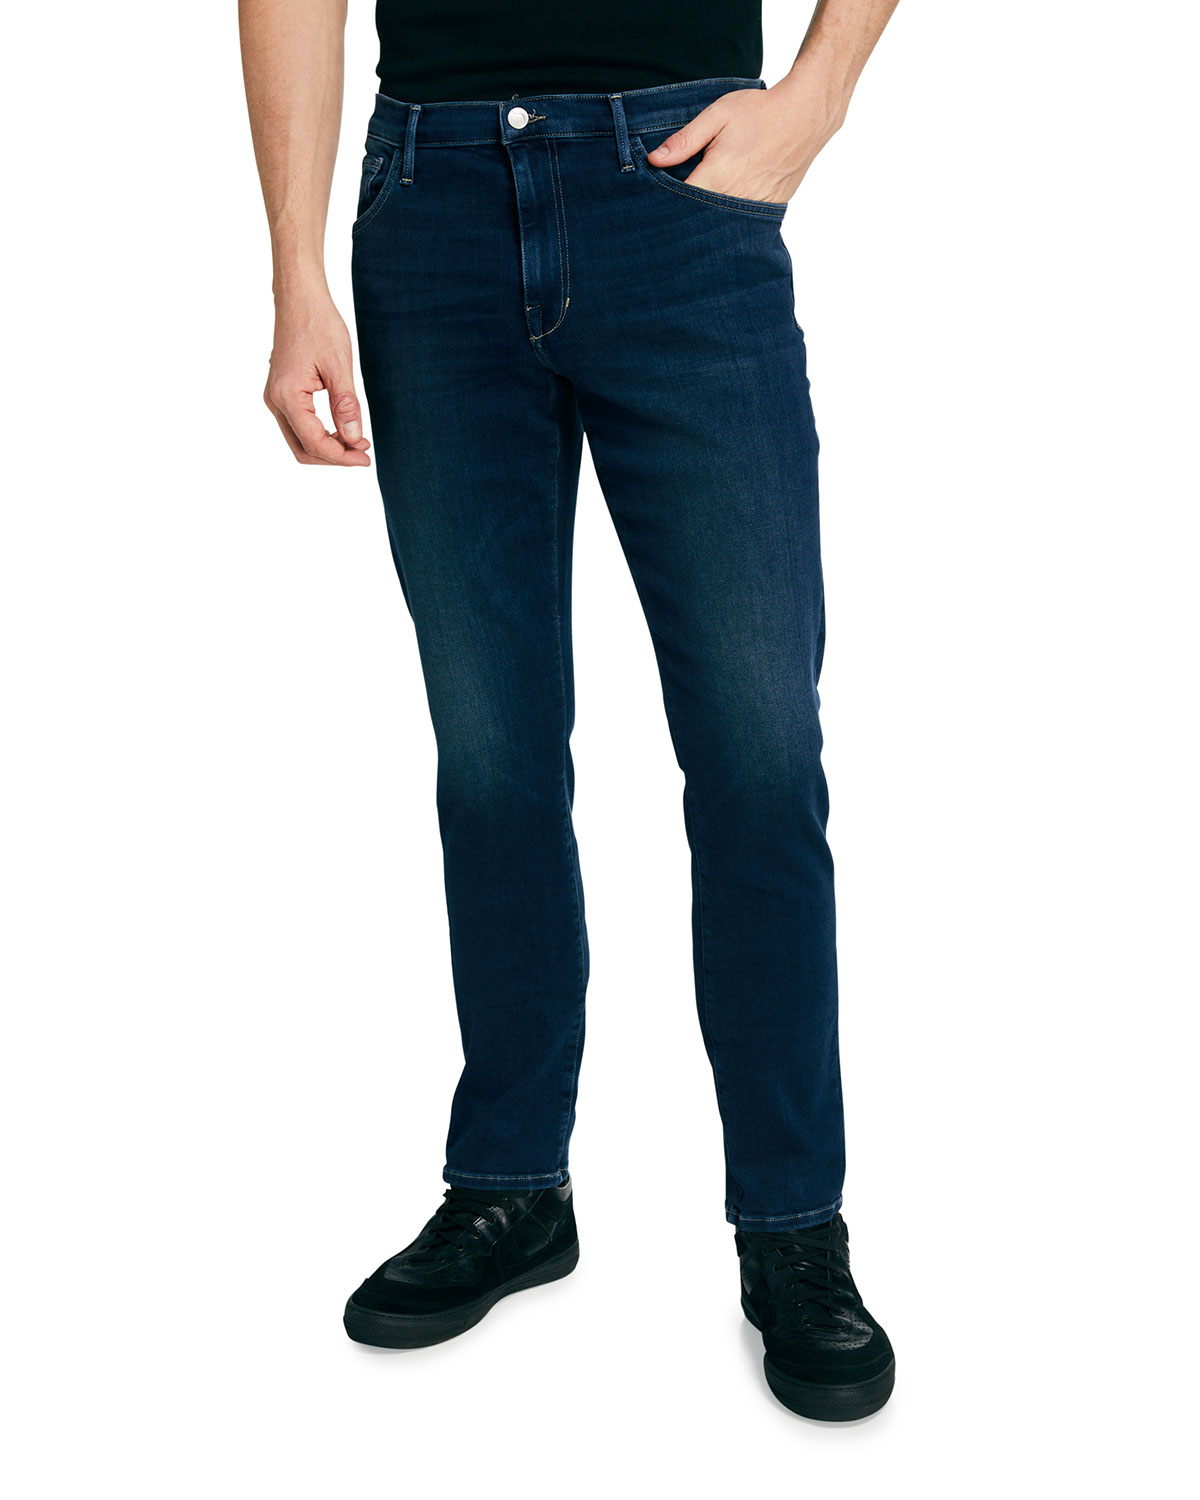 Joe's Jeans Men's Asher Slim Dark-Wash Jeans